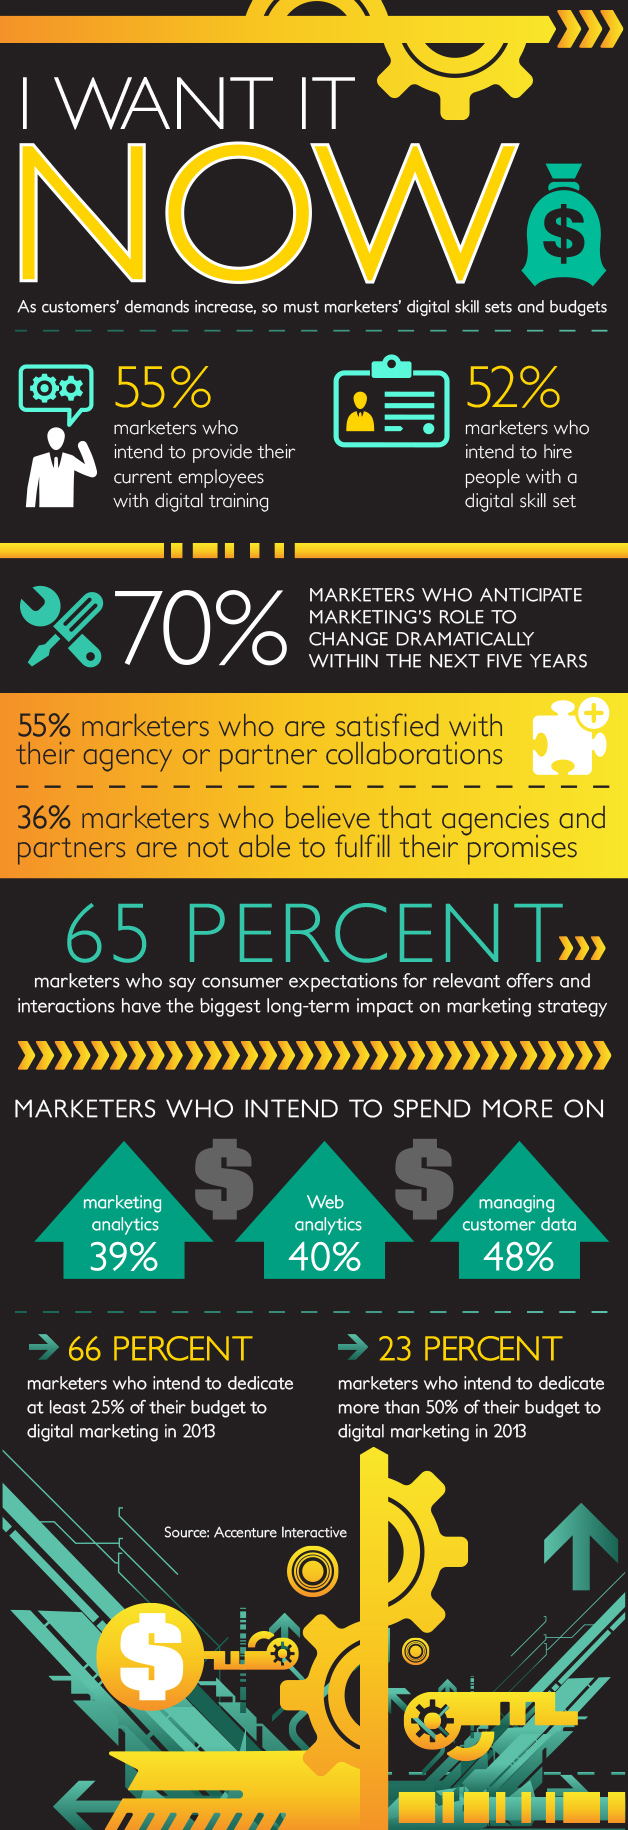 Digital Marketer Tomorrow-Infographic